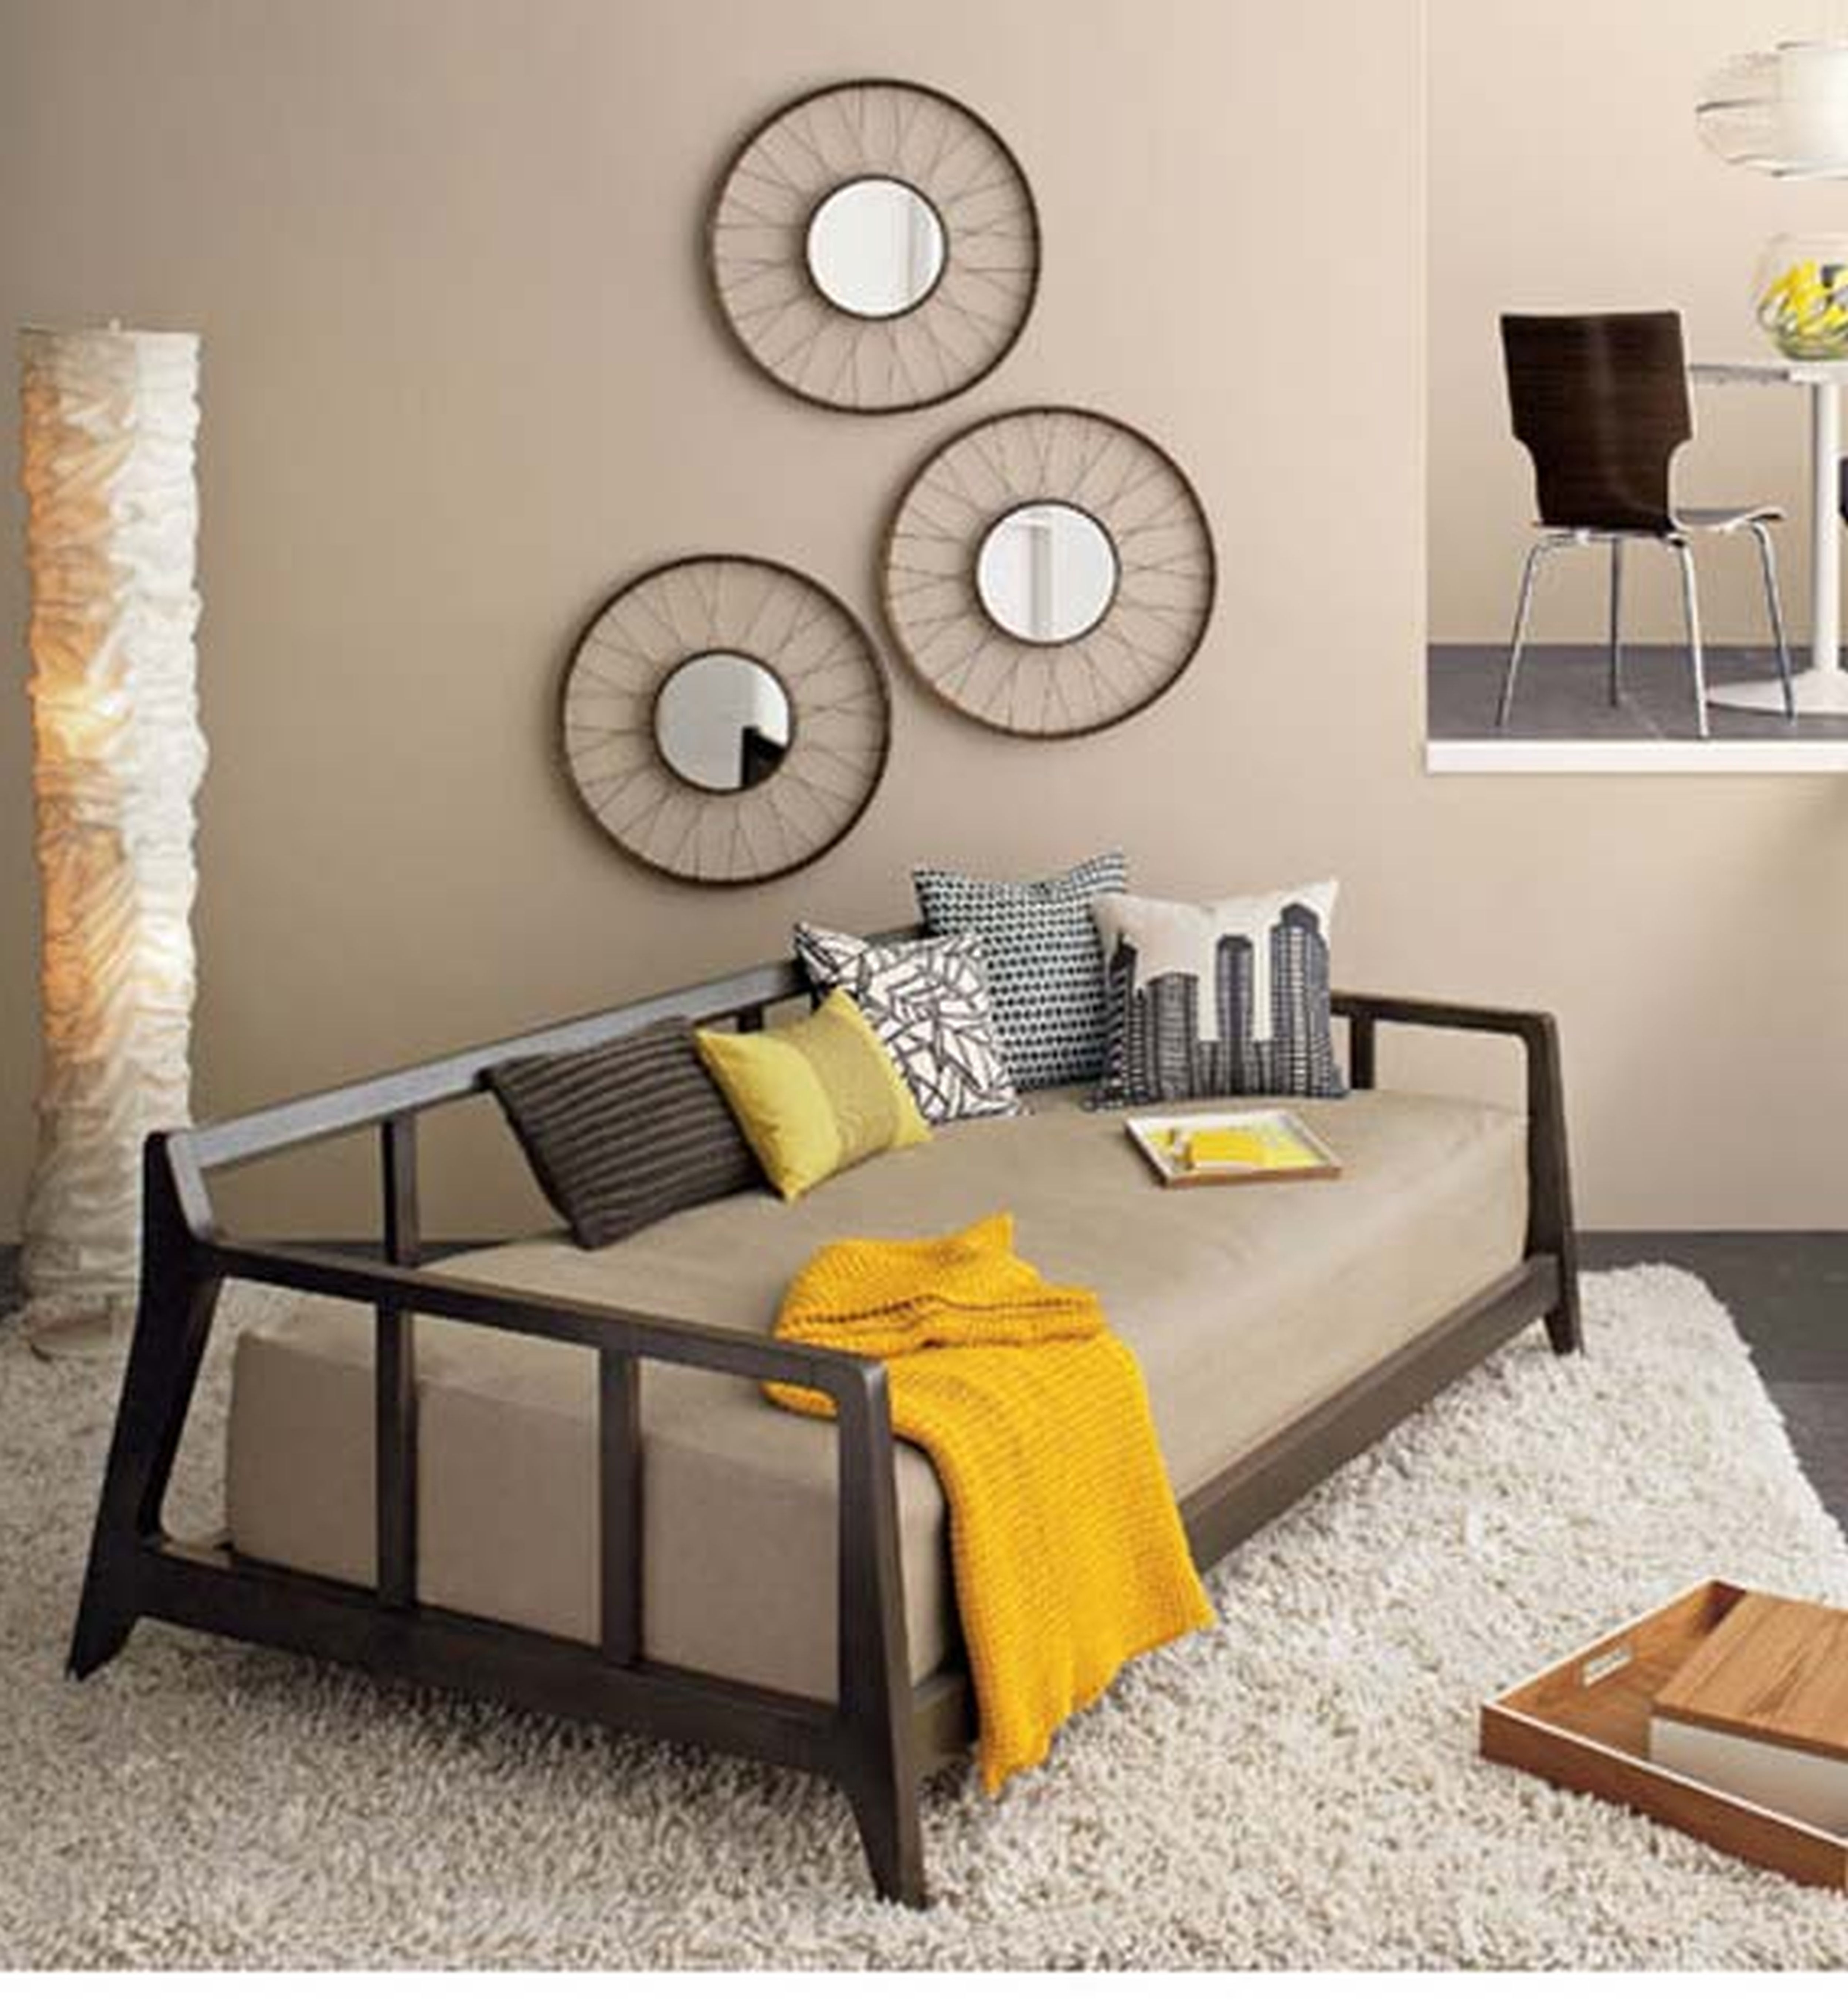 Inexpensive Wall Art For Well Known Diy Wall Art For Living Room Inexpensive Cheap Decorating Ideas For (View 9 of 20)